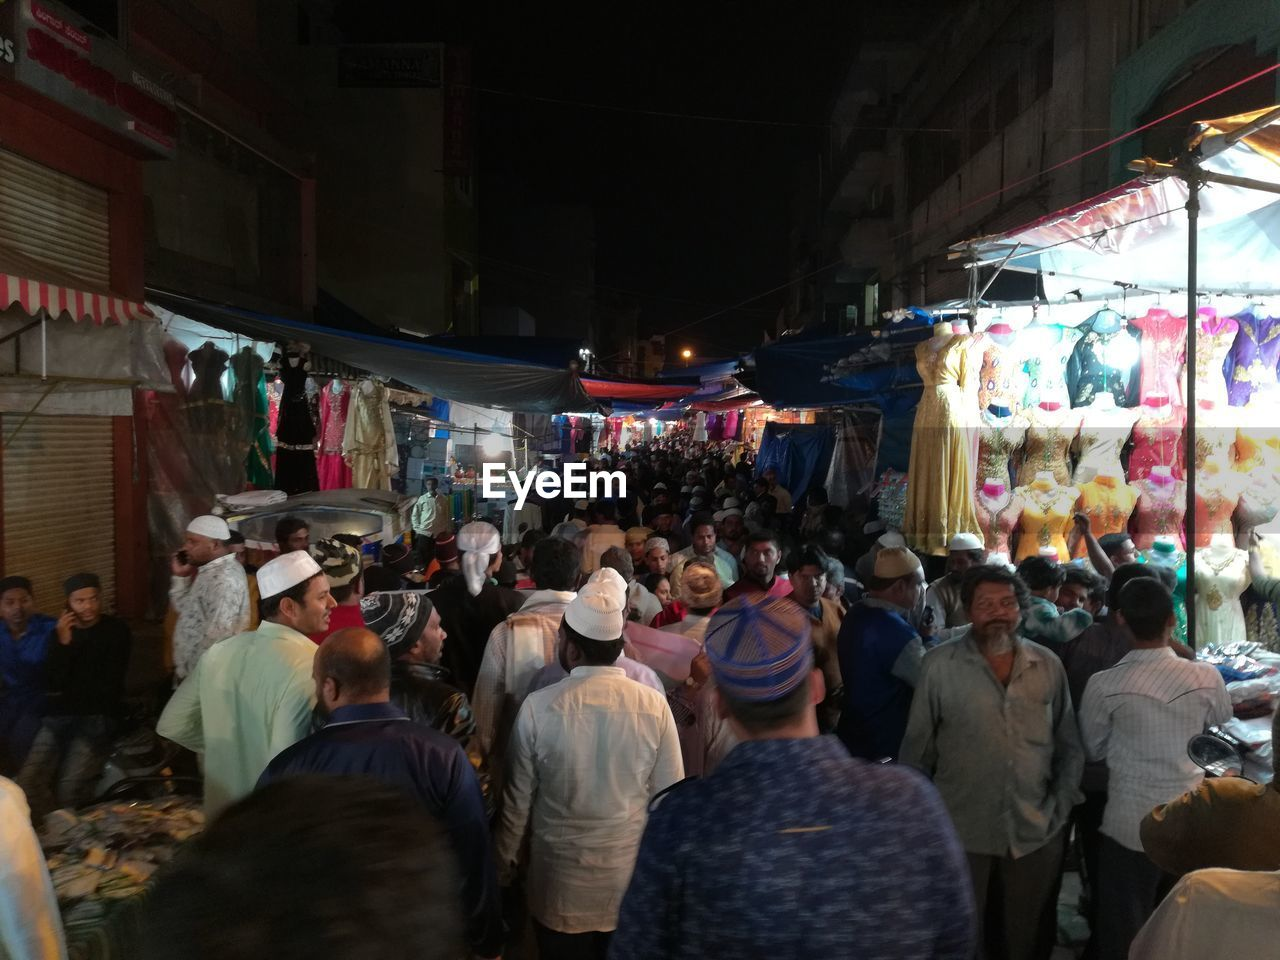 group of people, market, real people, city, large group of people, crowd, men, retail, architecture, street, women, market stall, adult, built structure, illuminated, night, lifestyles, shopping, business, street market, consumerism